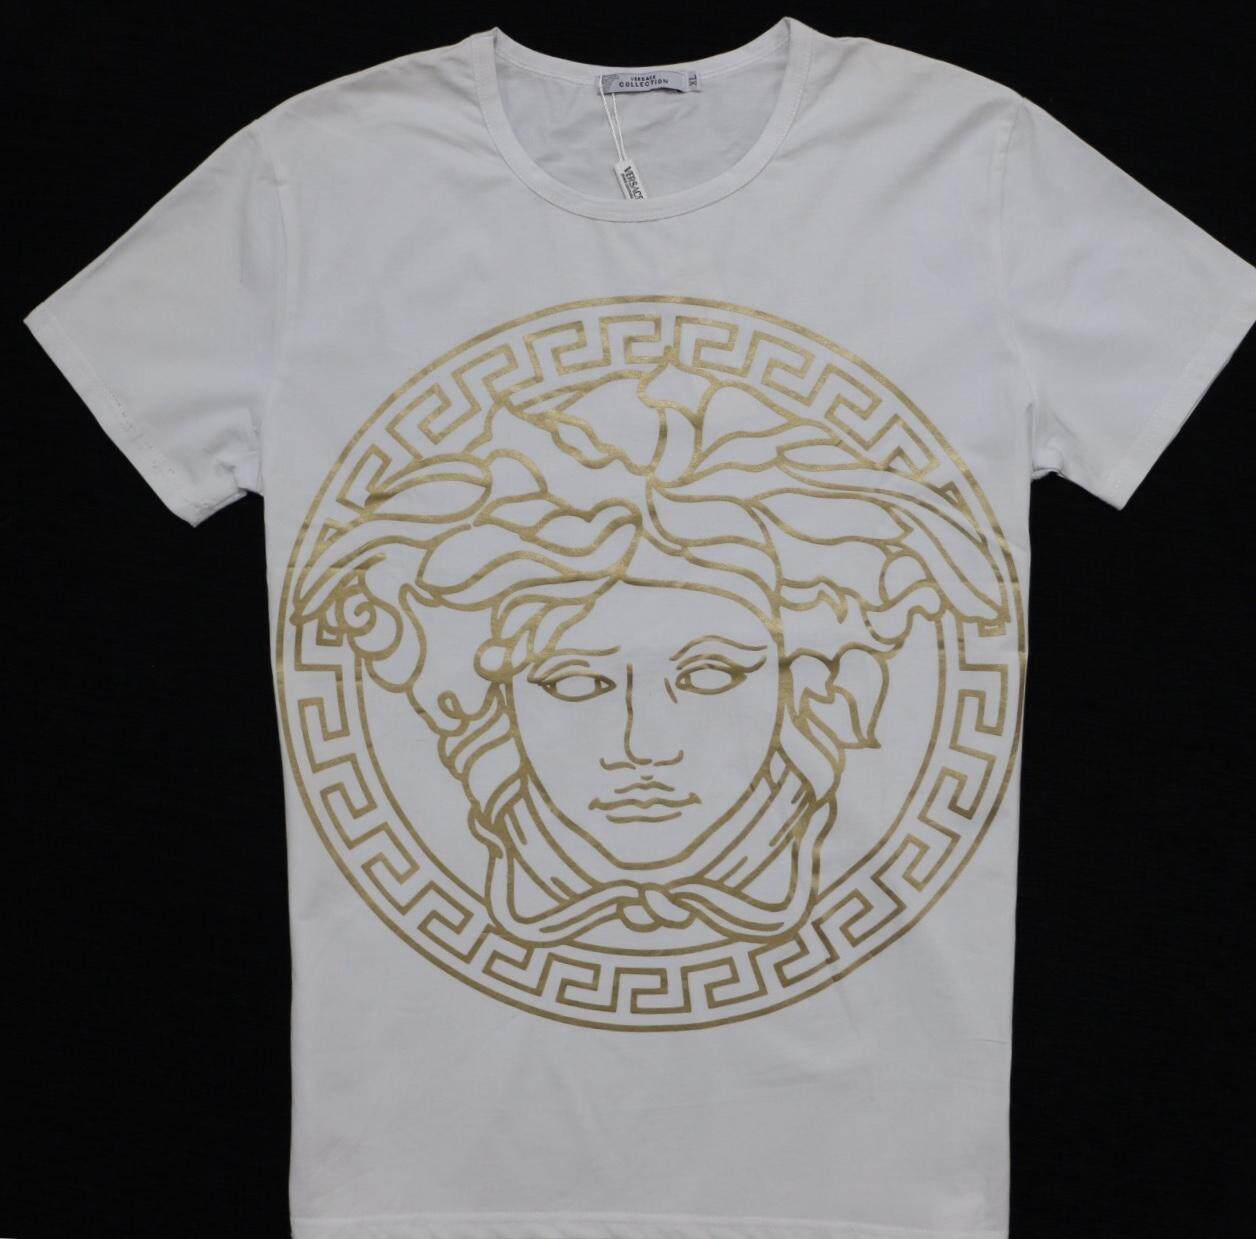 bebcc57d Versace T-shirt Men's T-Shirts - T-Shirts price in Malaysia - Best ...